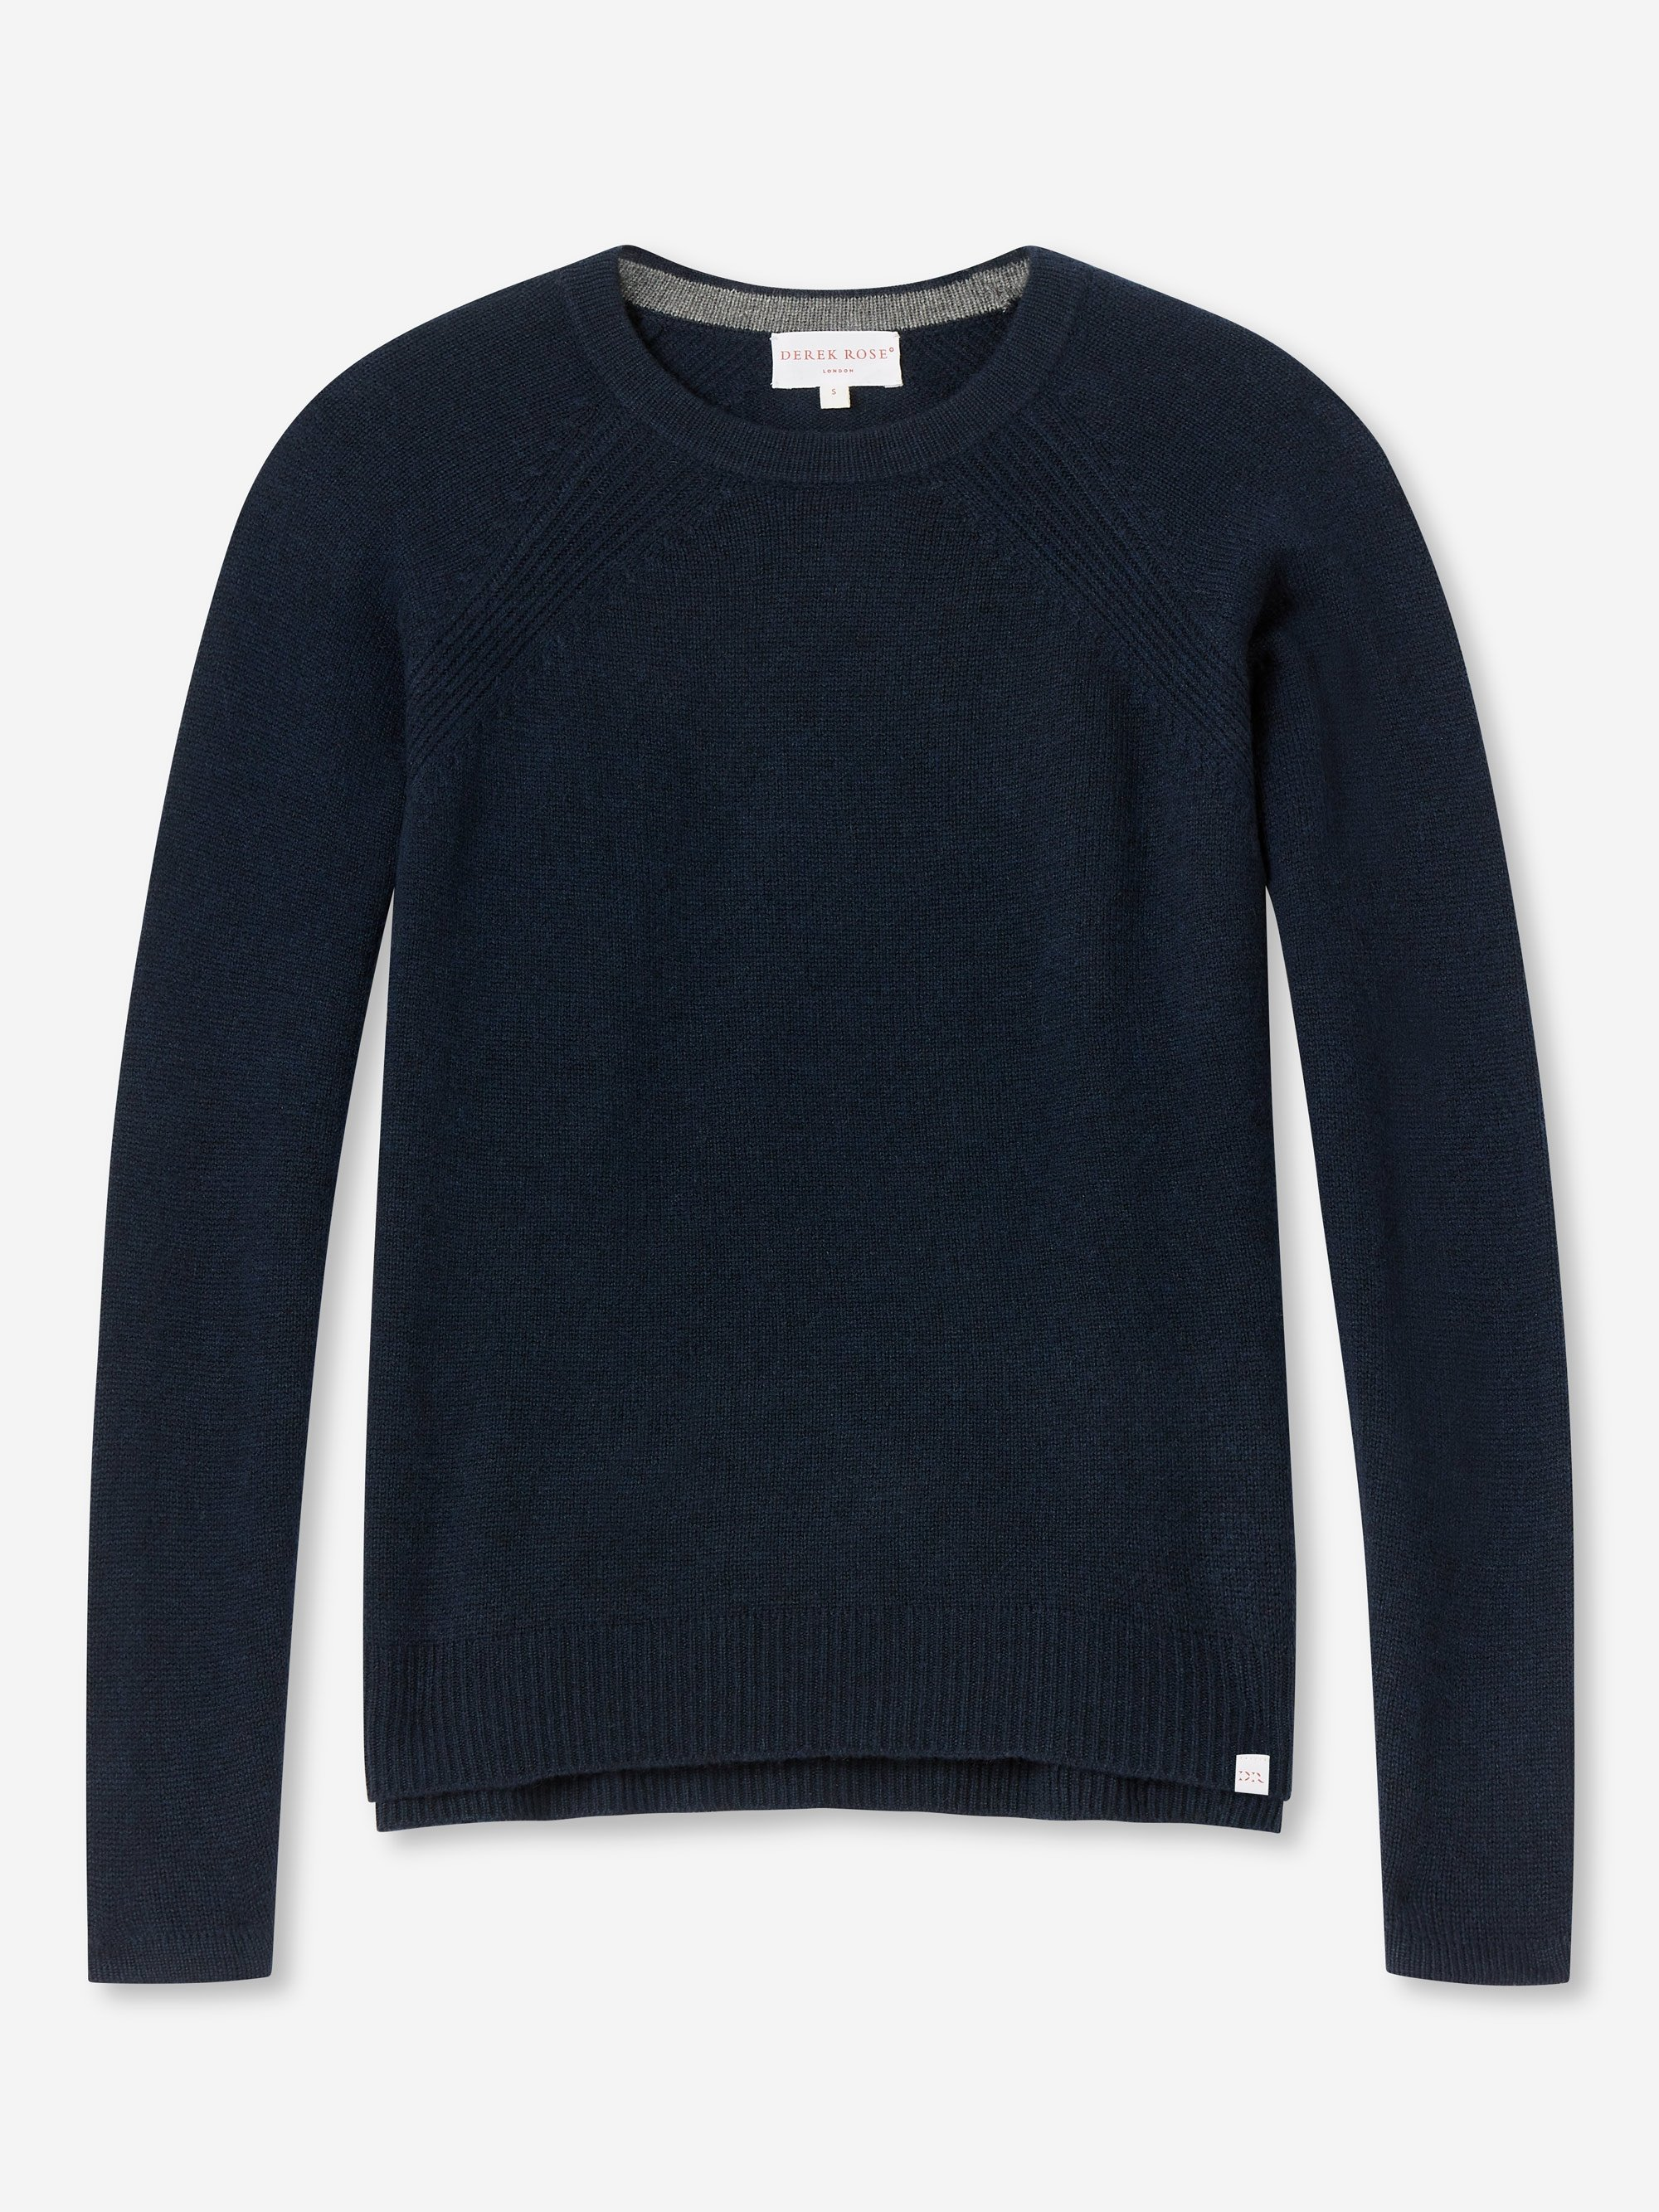 Women's Cashmere Sweater Daphne Pure Cashmere Navy